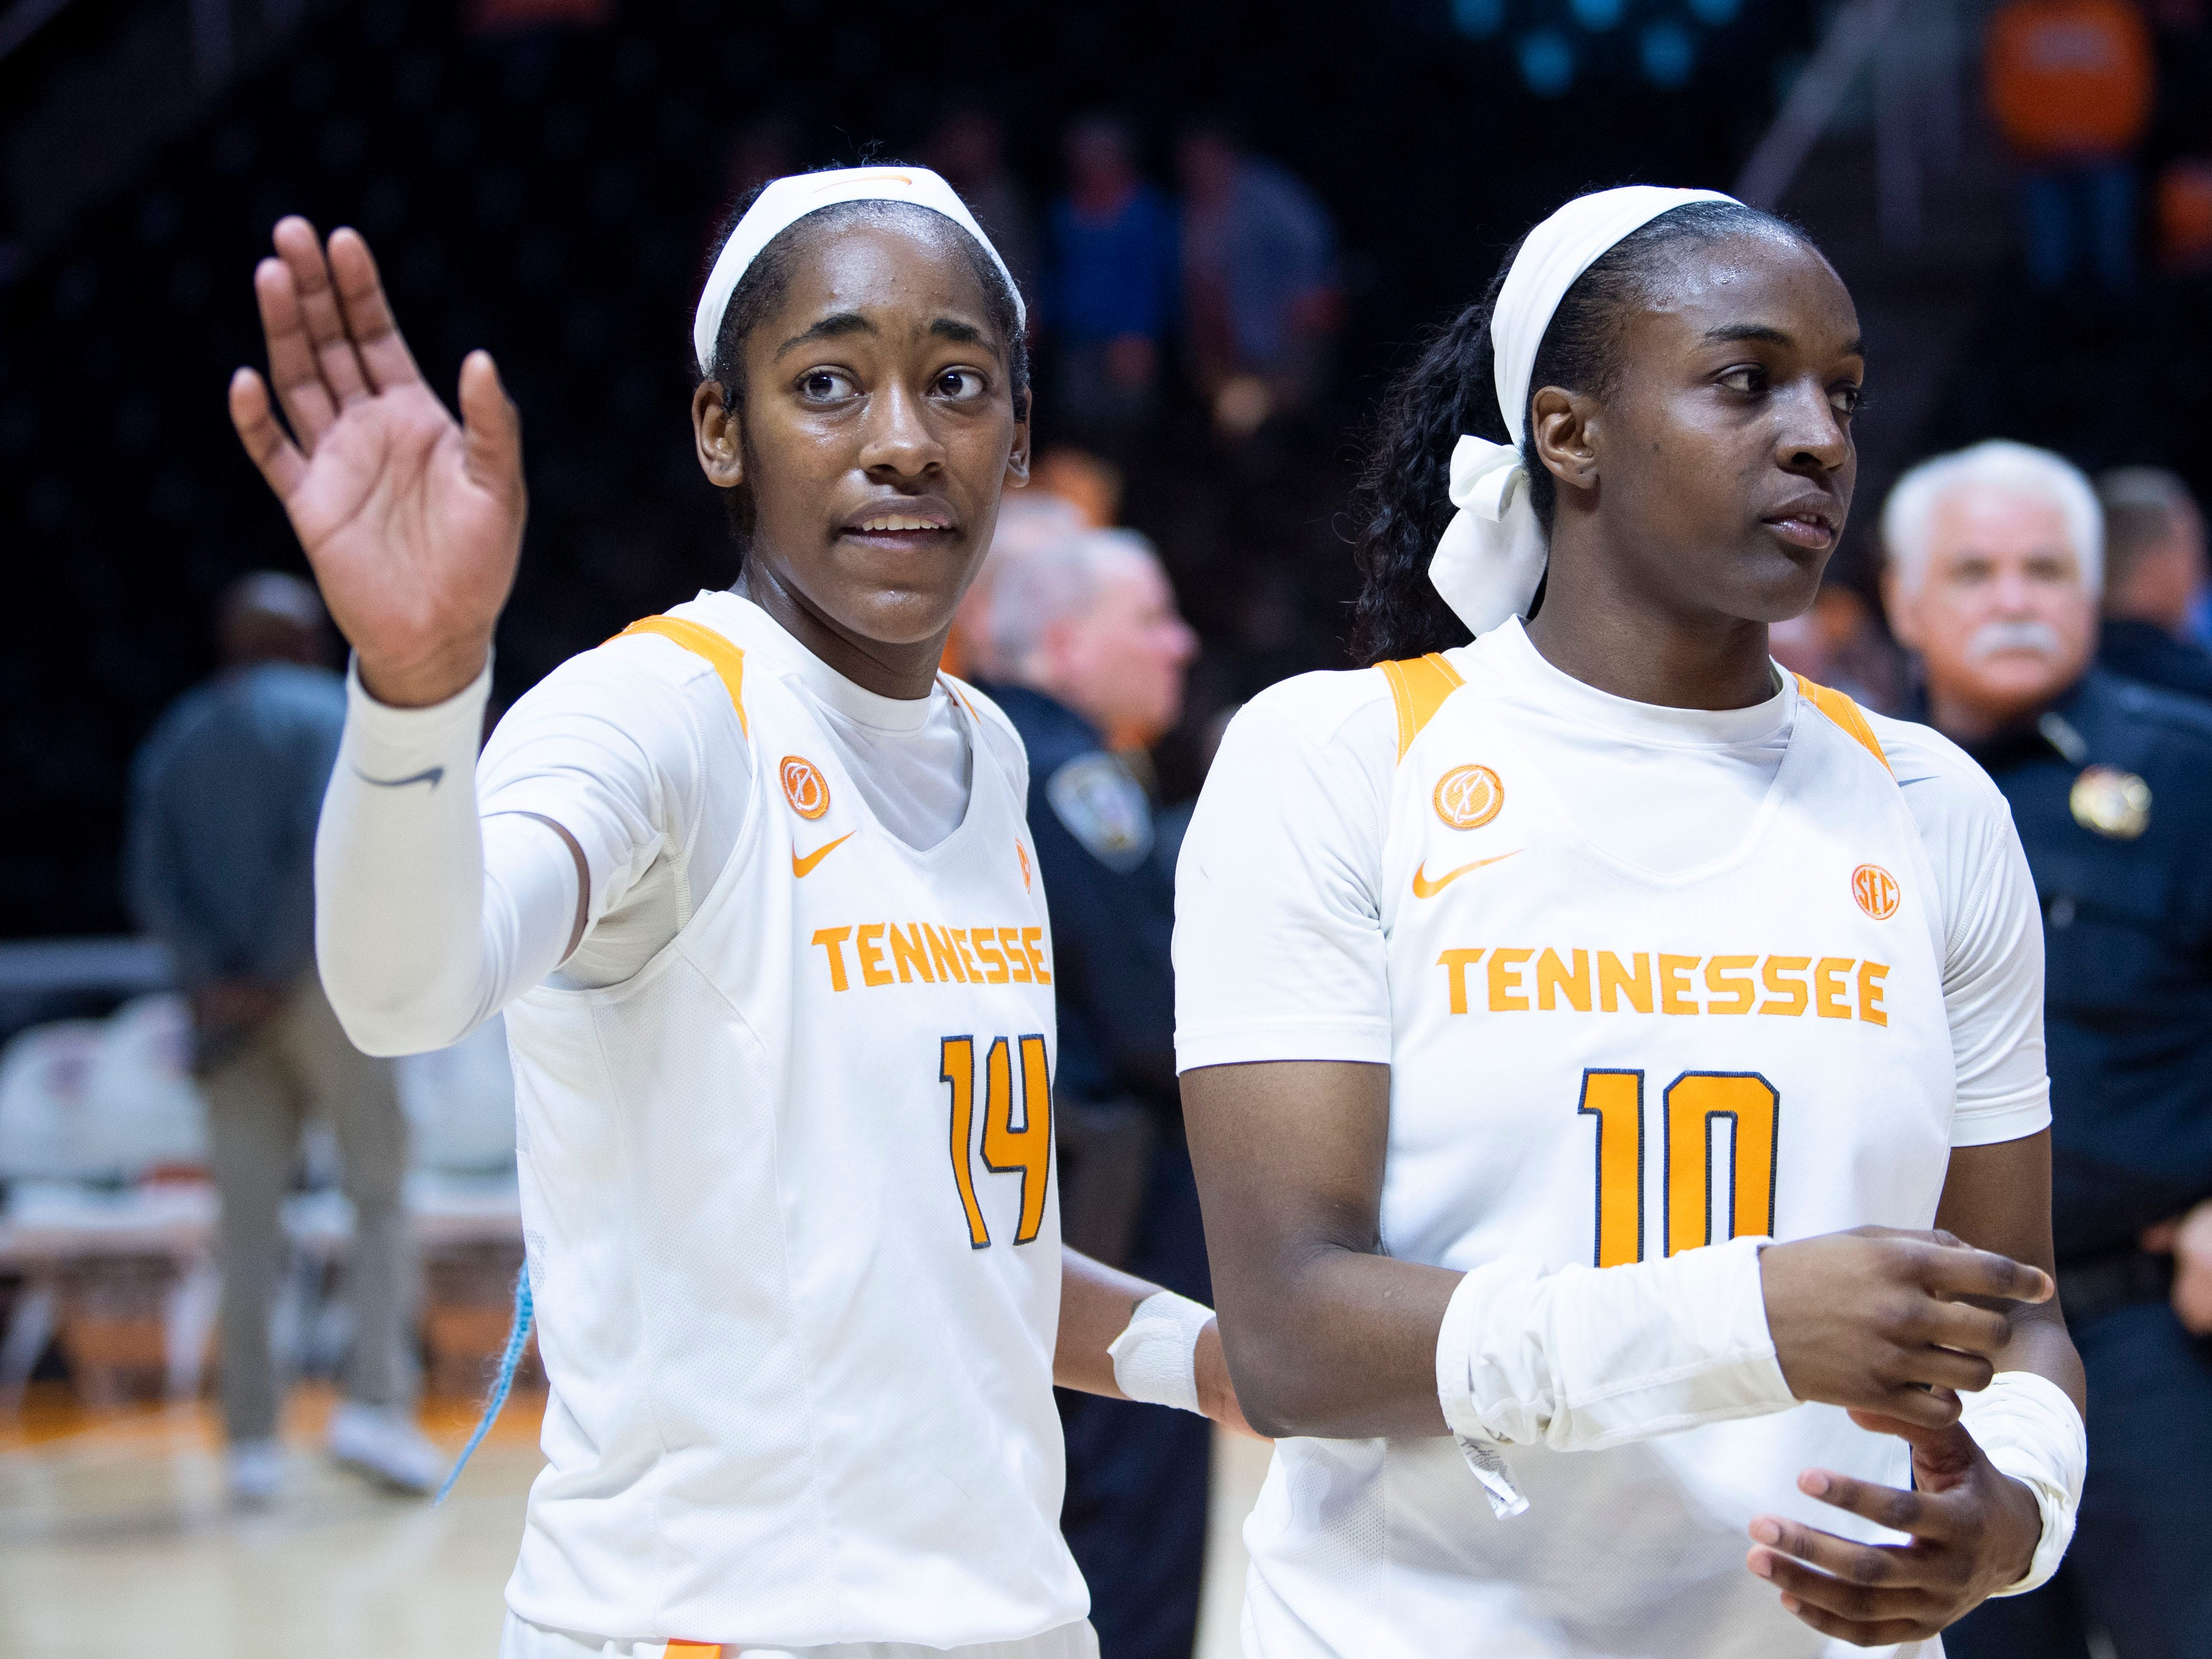 Tennessee's Zaay Green (14) waves to the fans as she and Meme Jackson (10) return to their locker room after 73-62 over Auburn on Thursday, February 14, 2019.